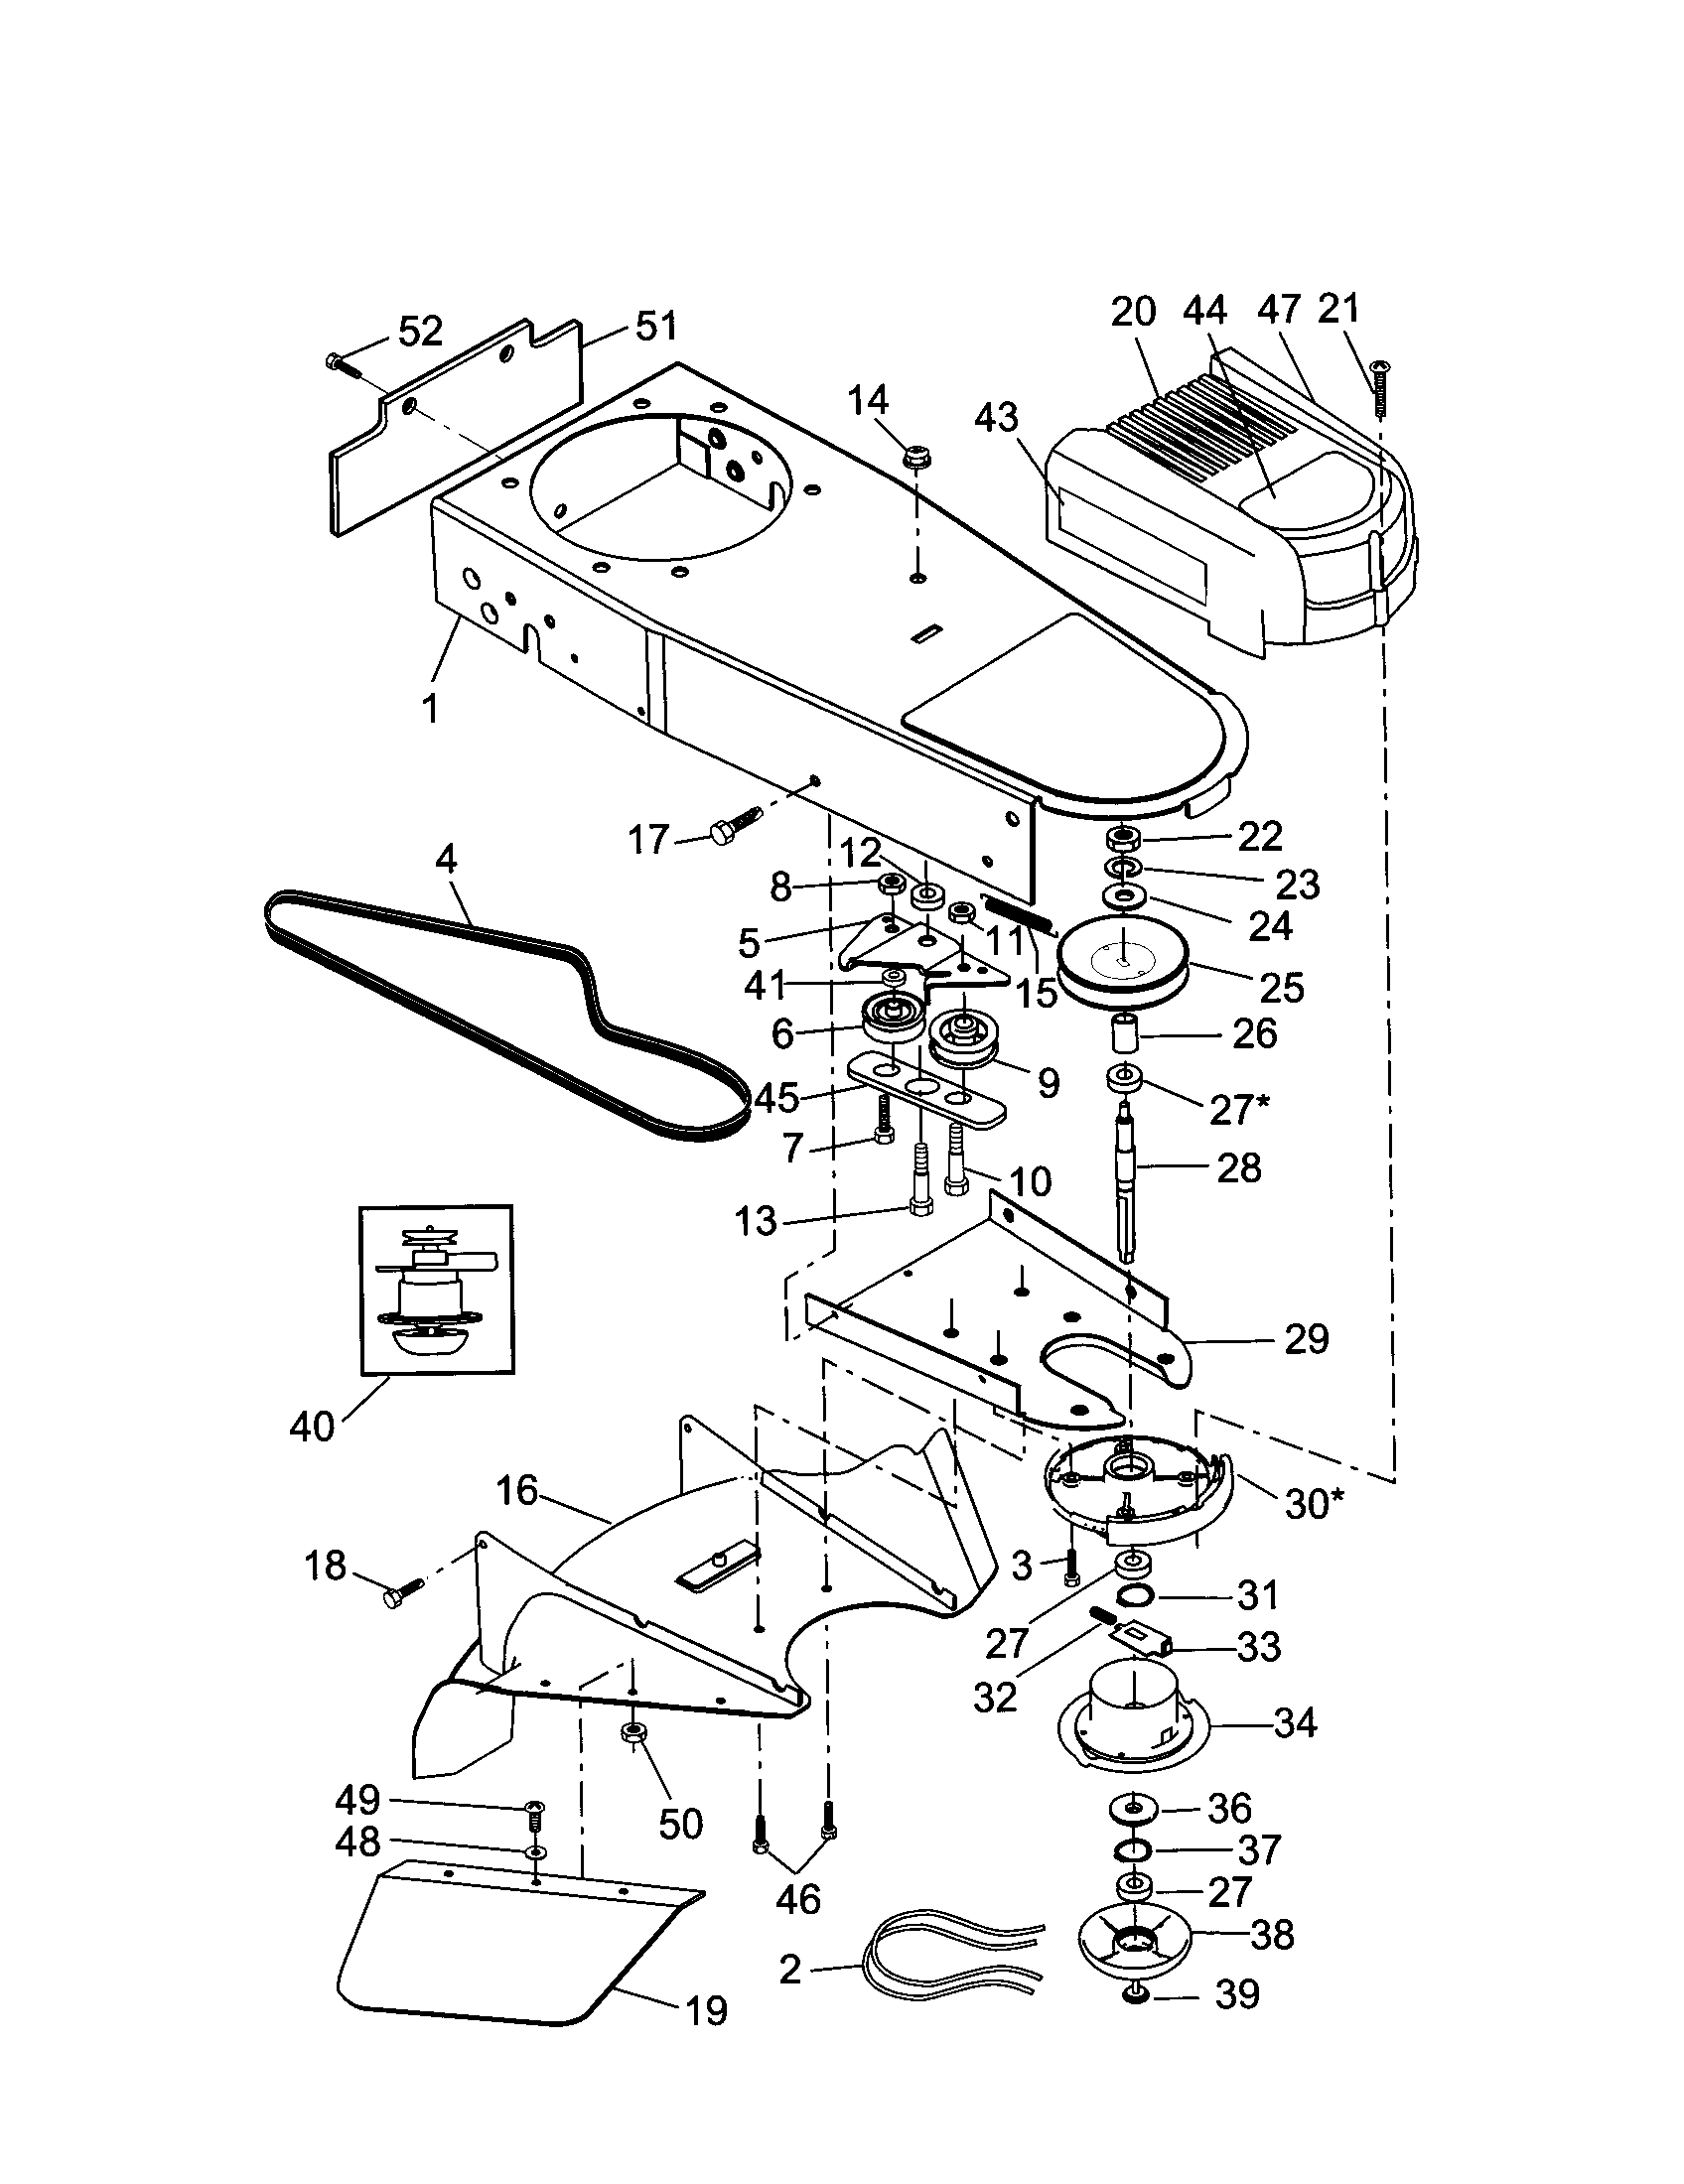 Craftsman Trimmer Line Replacement Wiring Diagrams